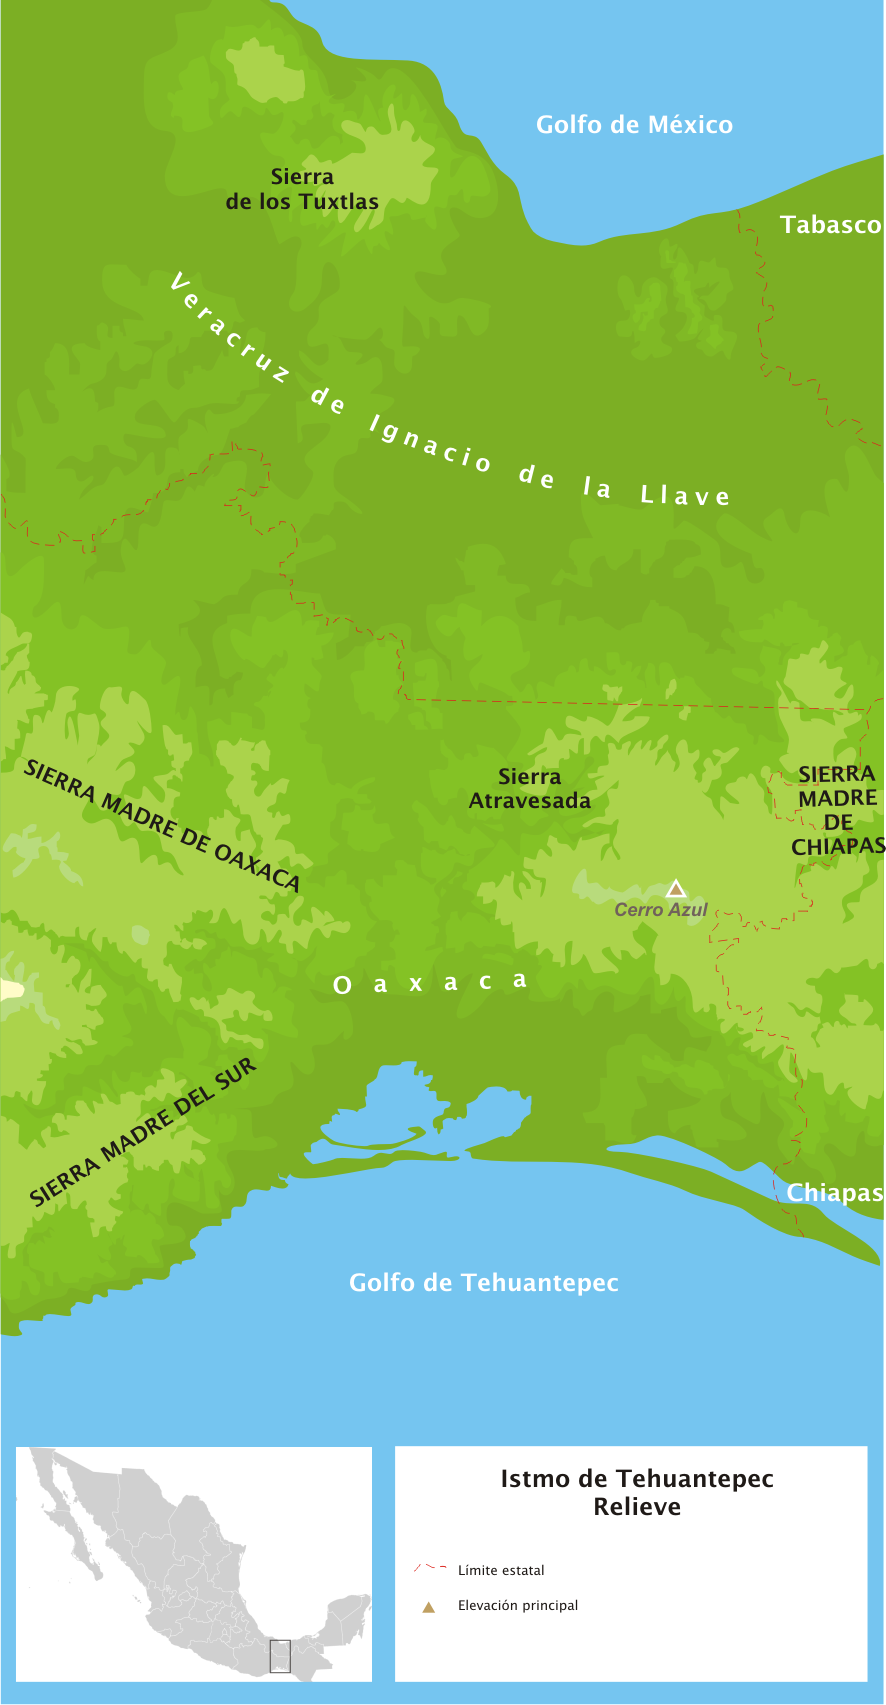 Golfo De Mexico Map.Gulf Of Tehuantepec Wikipedia